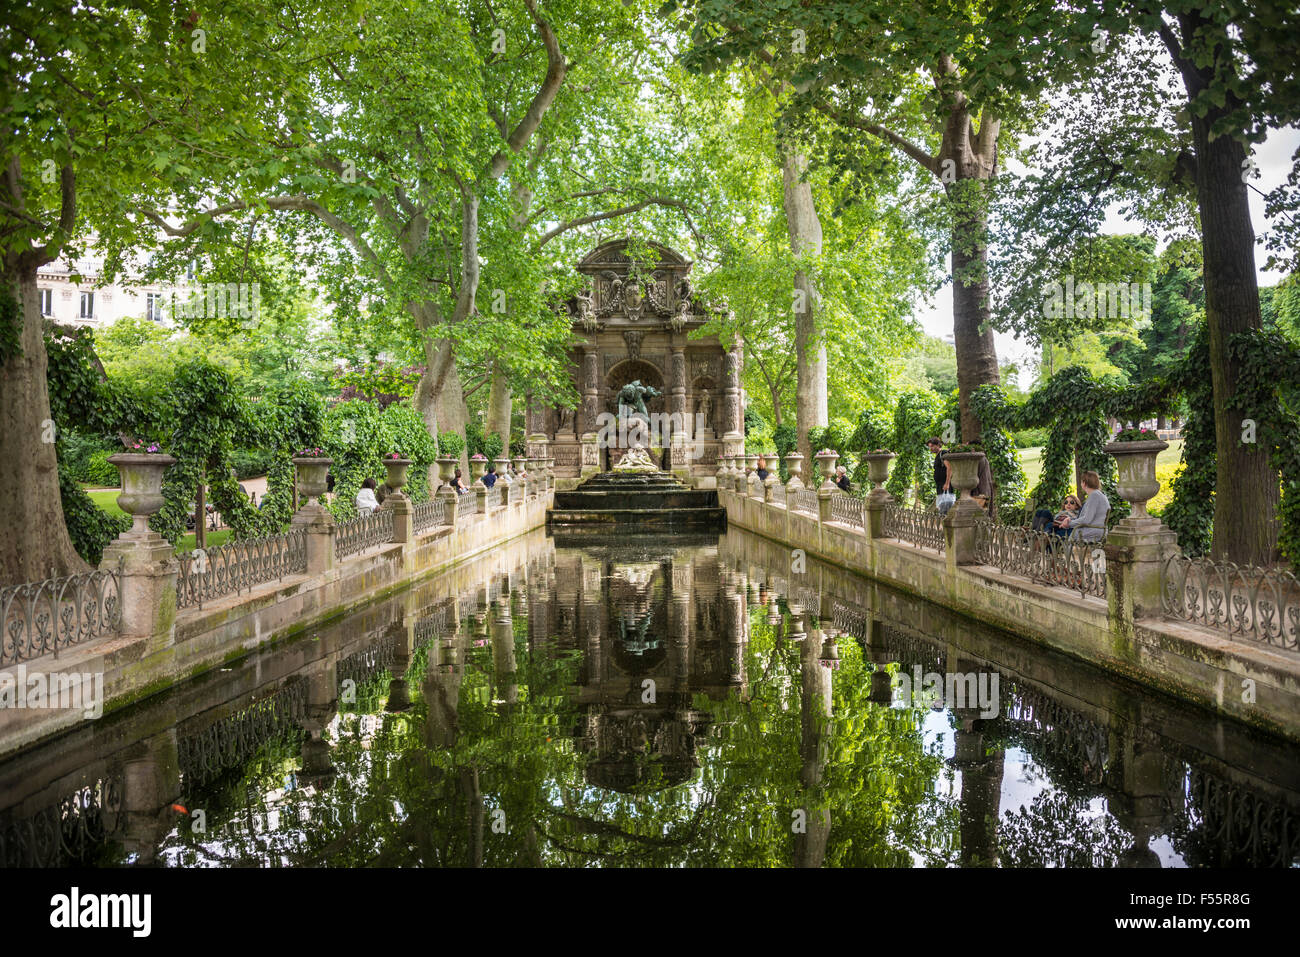 Medici Fountain Luxembourg Gardens Paris France Stock Photo